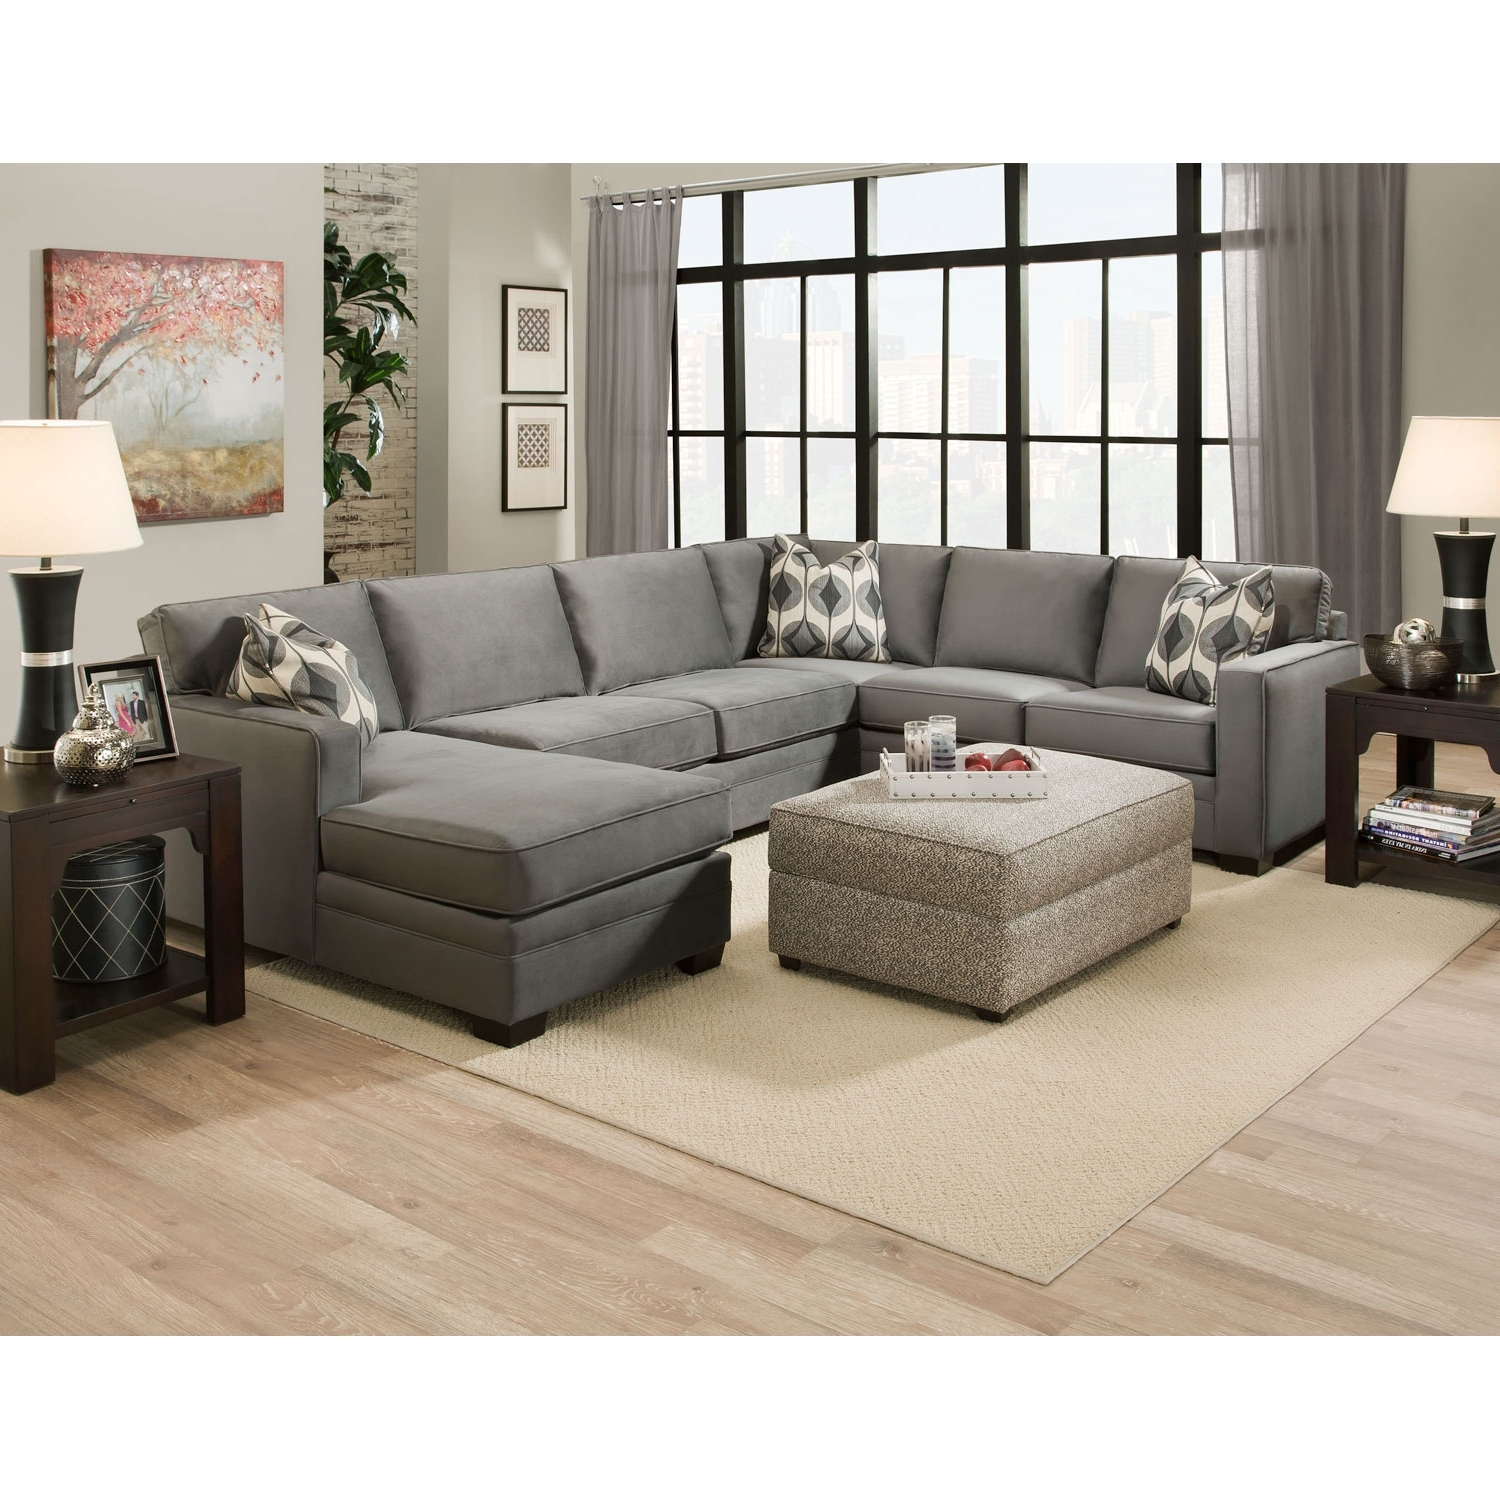 Gray Extra Large U Shaped Sectional Sofa With Chaise And Accent In Popular Memphis Tn Sectional Sofas (Gallery 19 of 20)